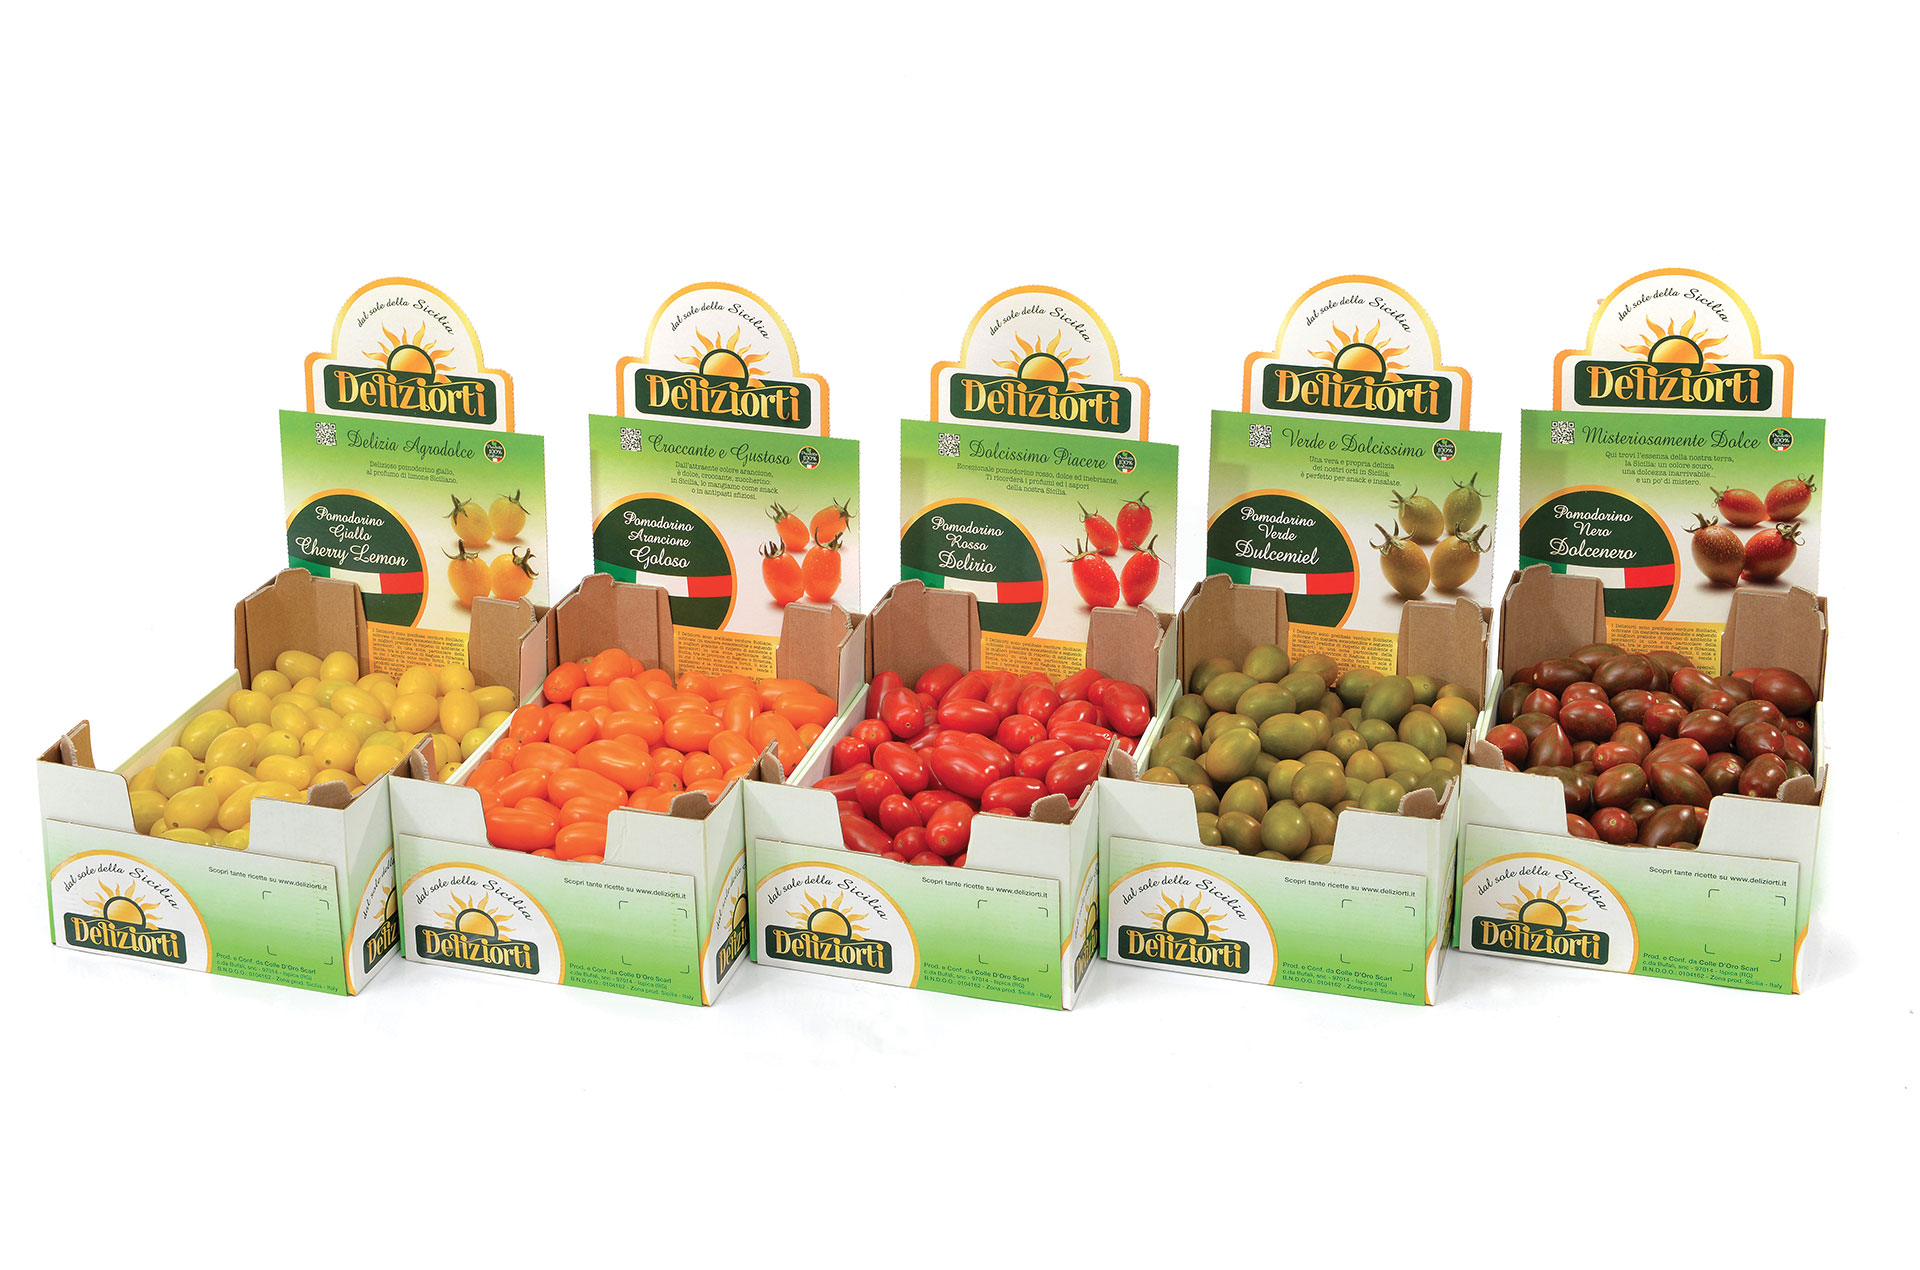 """olle d'Oro's new brand Deliziorti is designed to highlight the source of the produce, under the slogan """"From the Sicilian sun."""""""